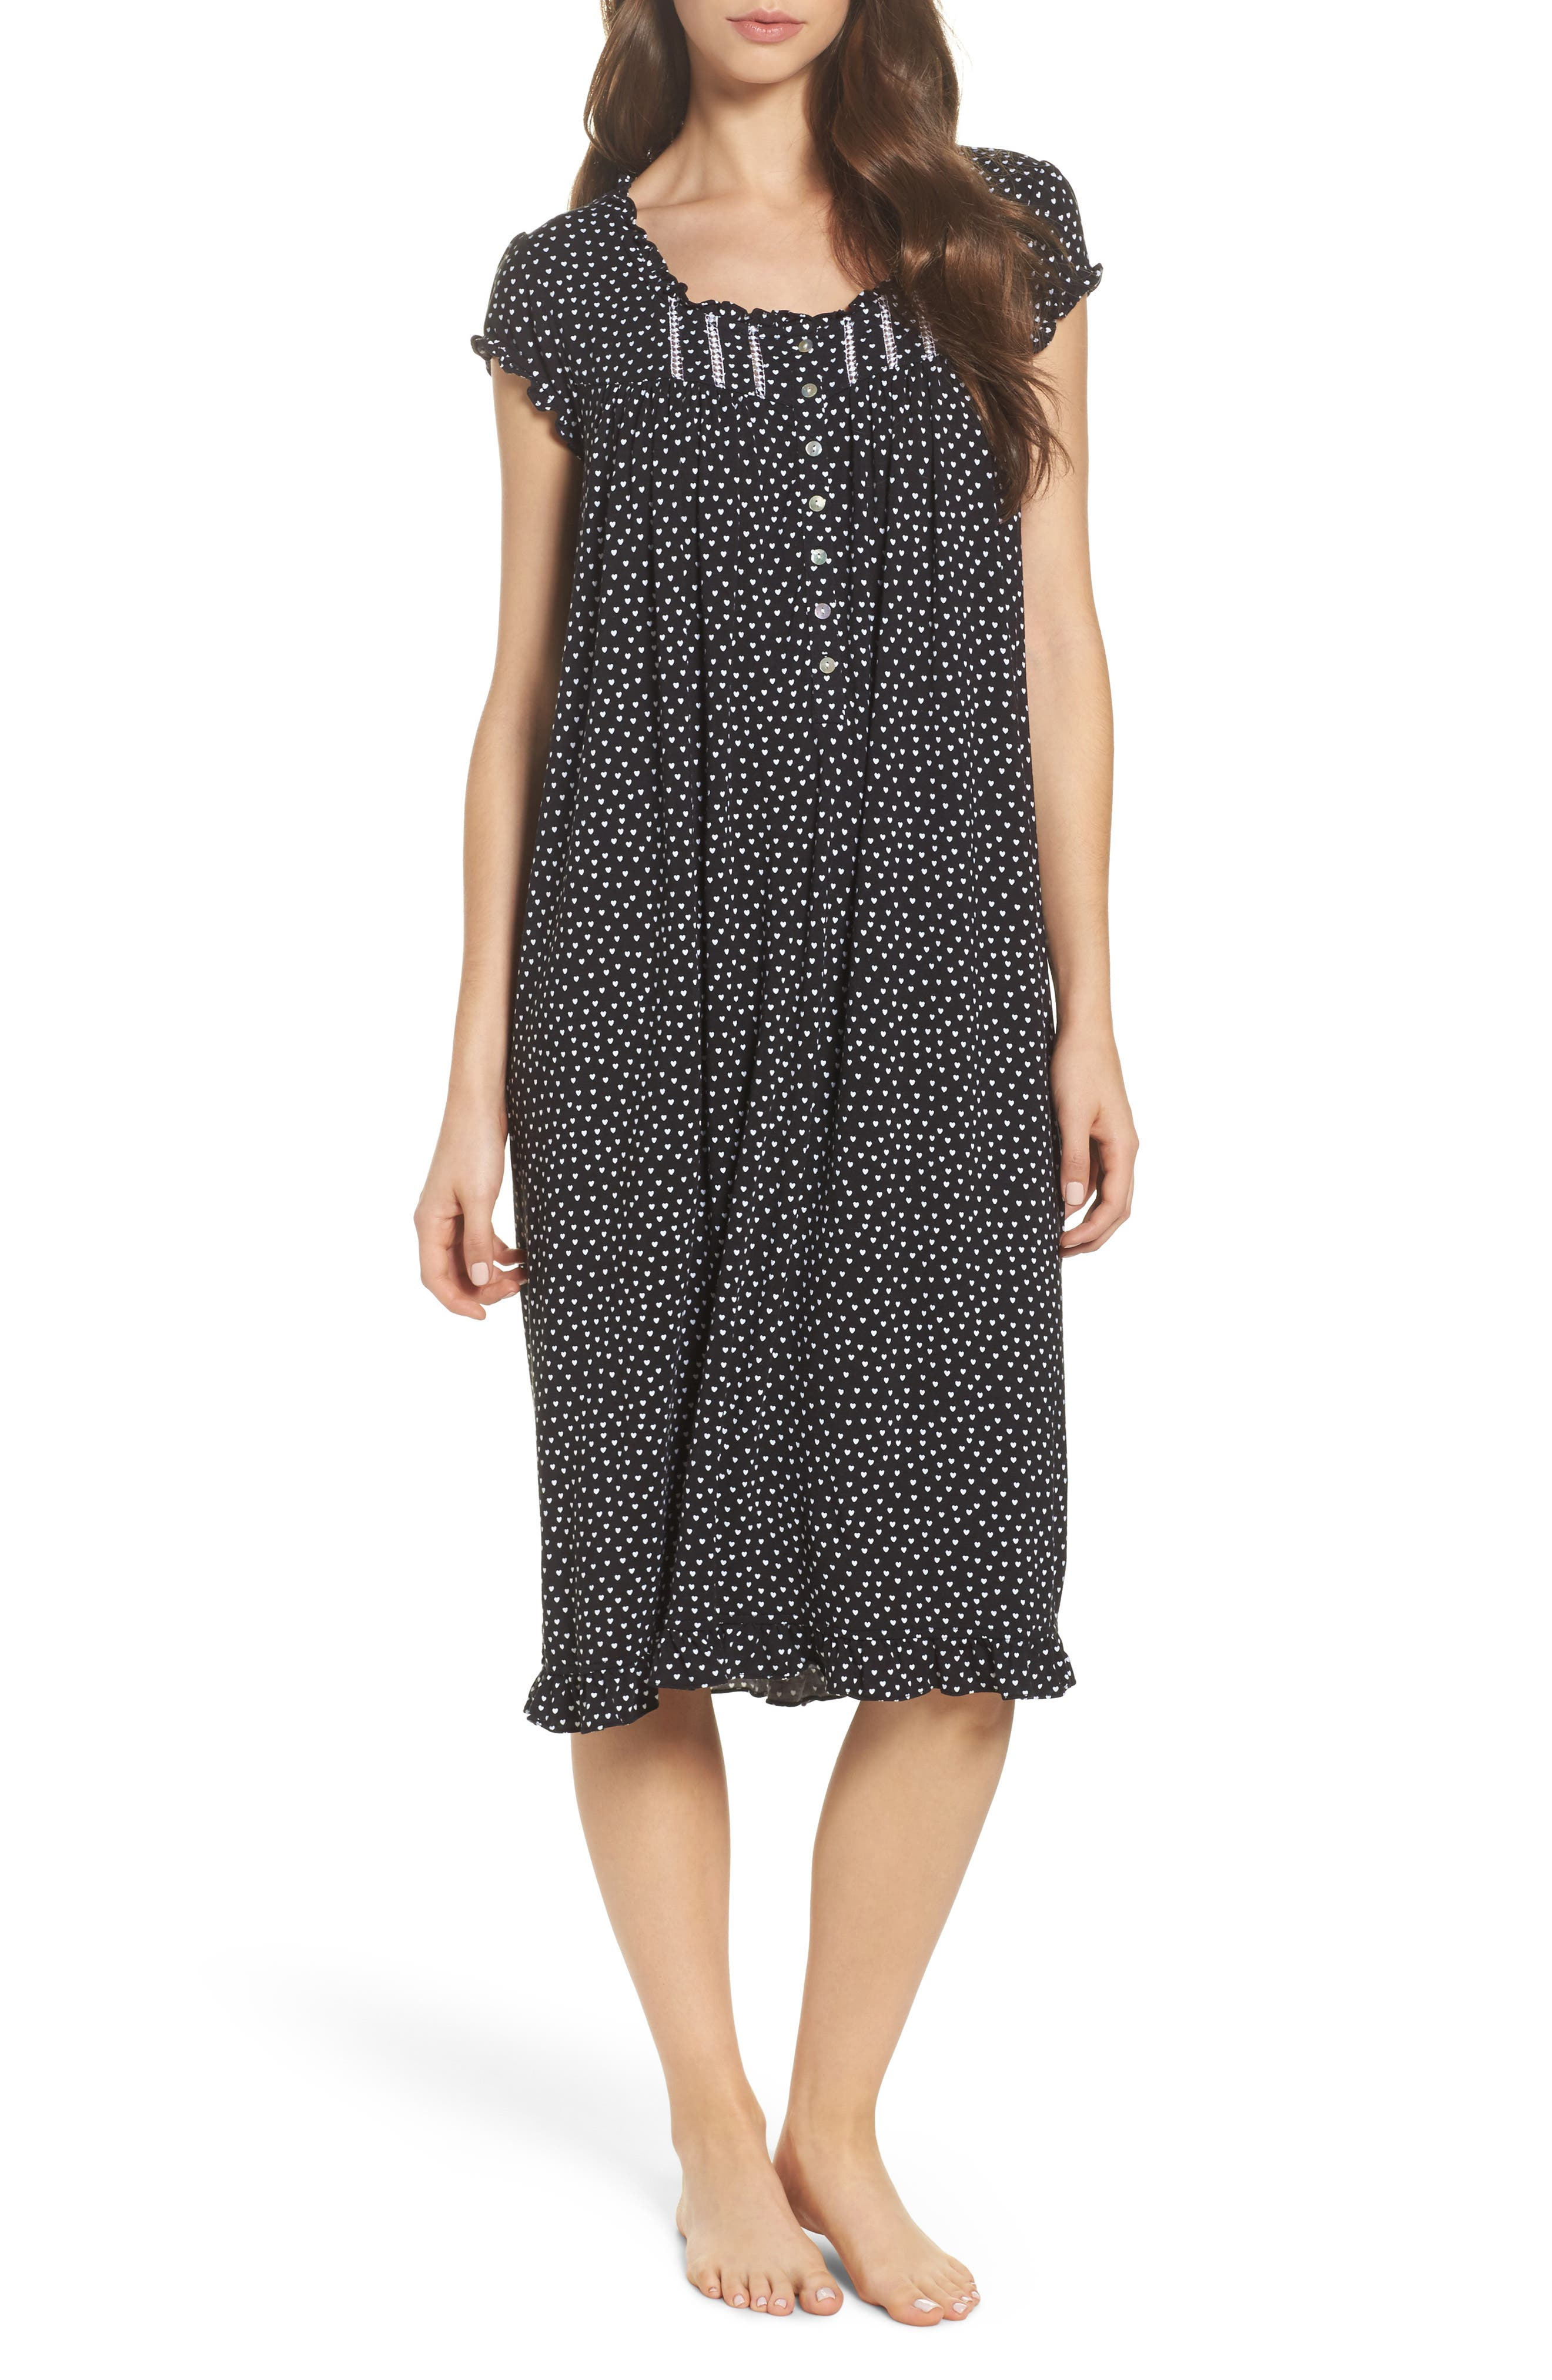 Modal Jersey Nightgown,                             Main thumbnail 1, color,                             001